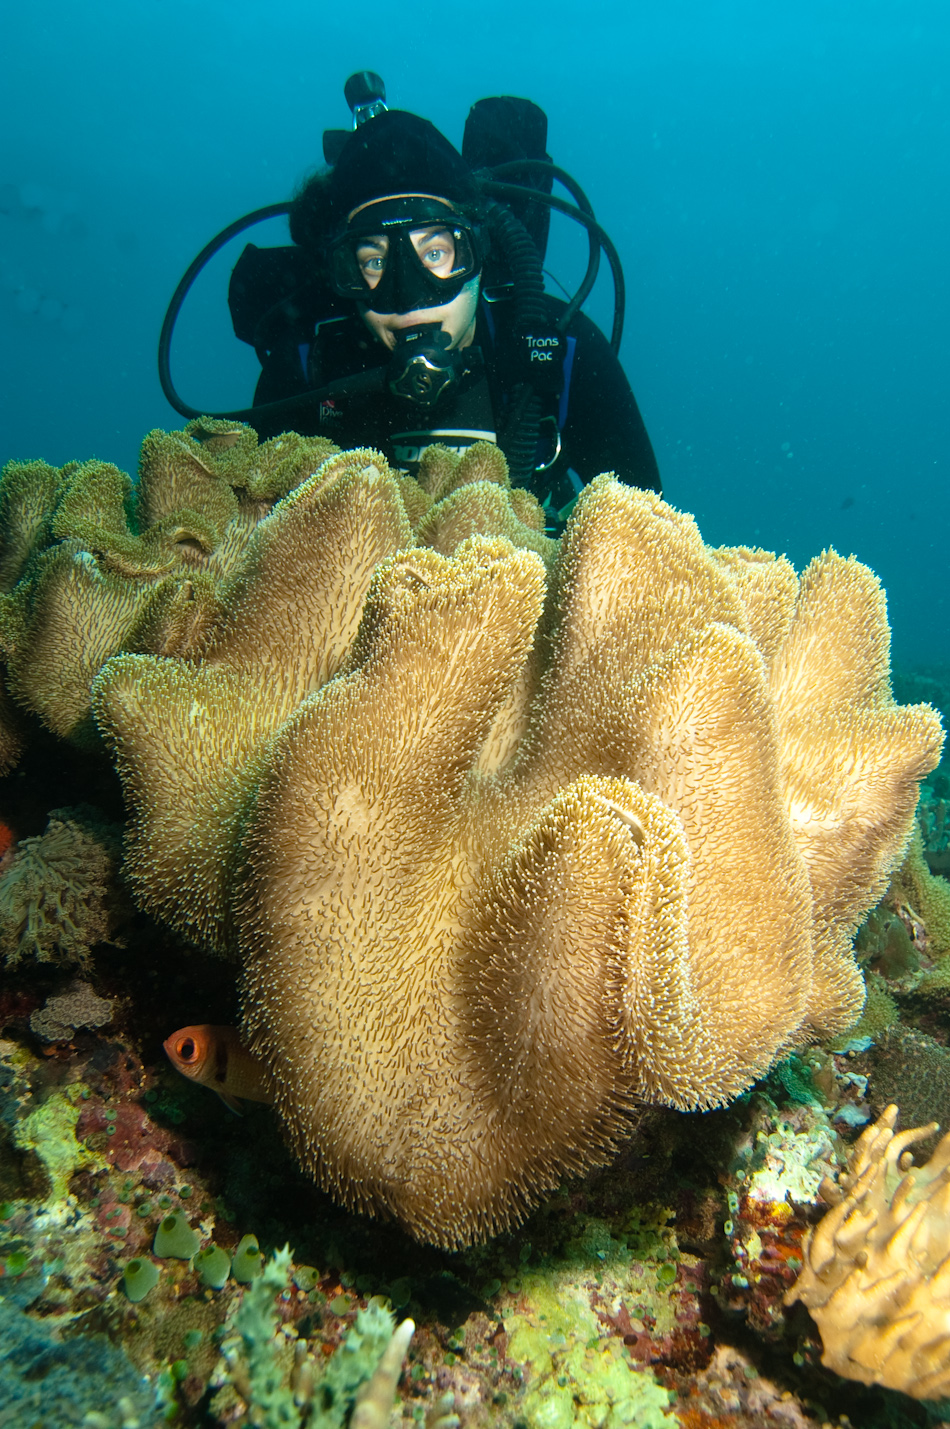 Diver and sponge coral, Apo Island Philippines